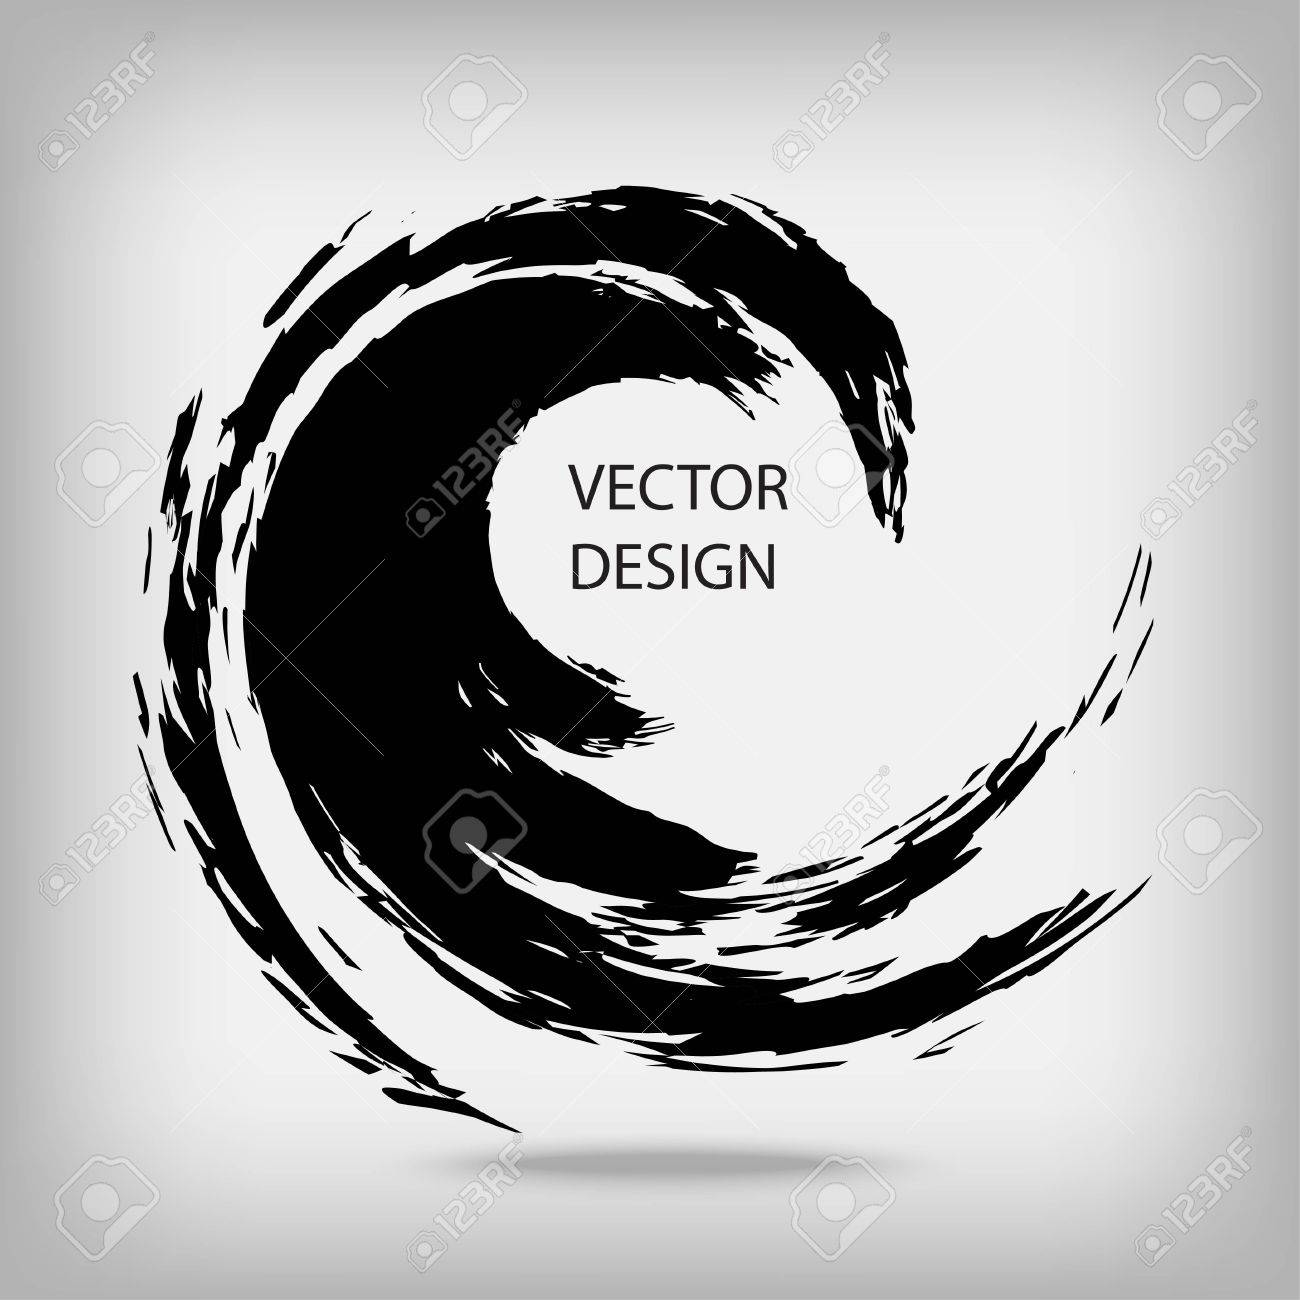 Hand drawn circle shape. Circular label, design element, frame. Brush abstract wave. Black enso zen symbol. Vector illustration. Place for text. - 64692069